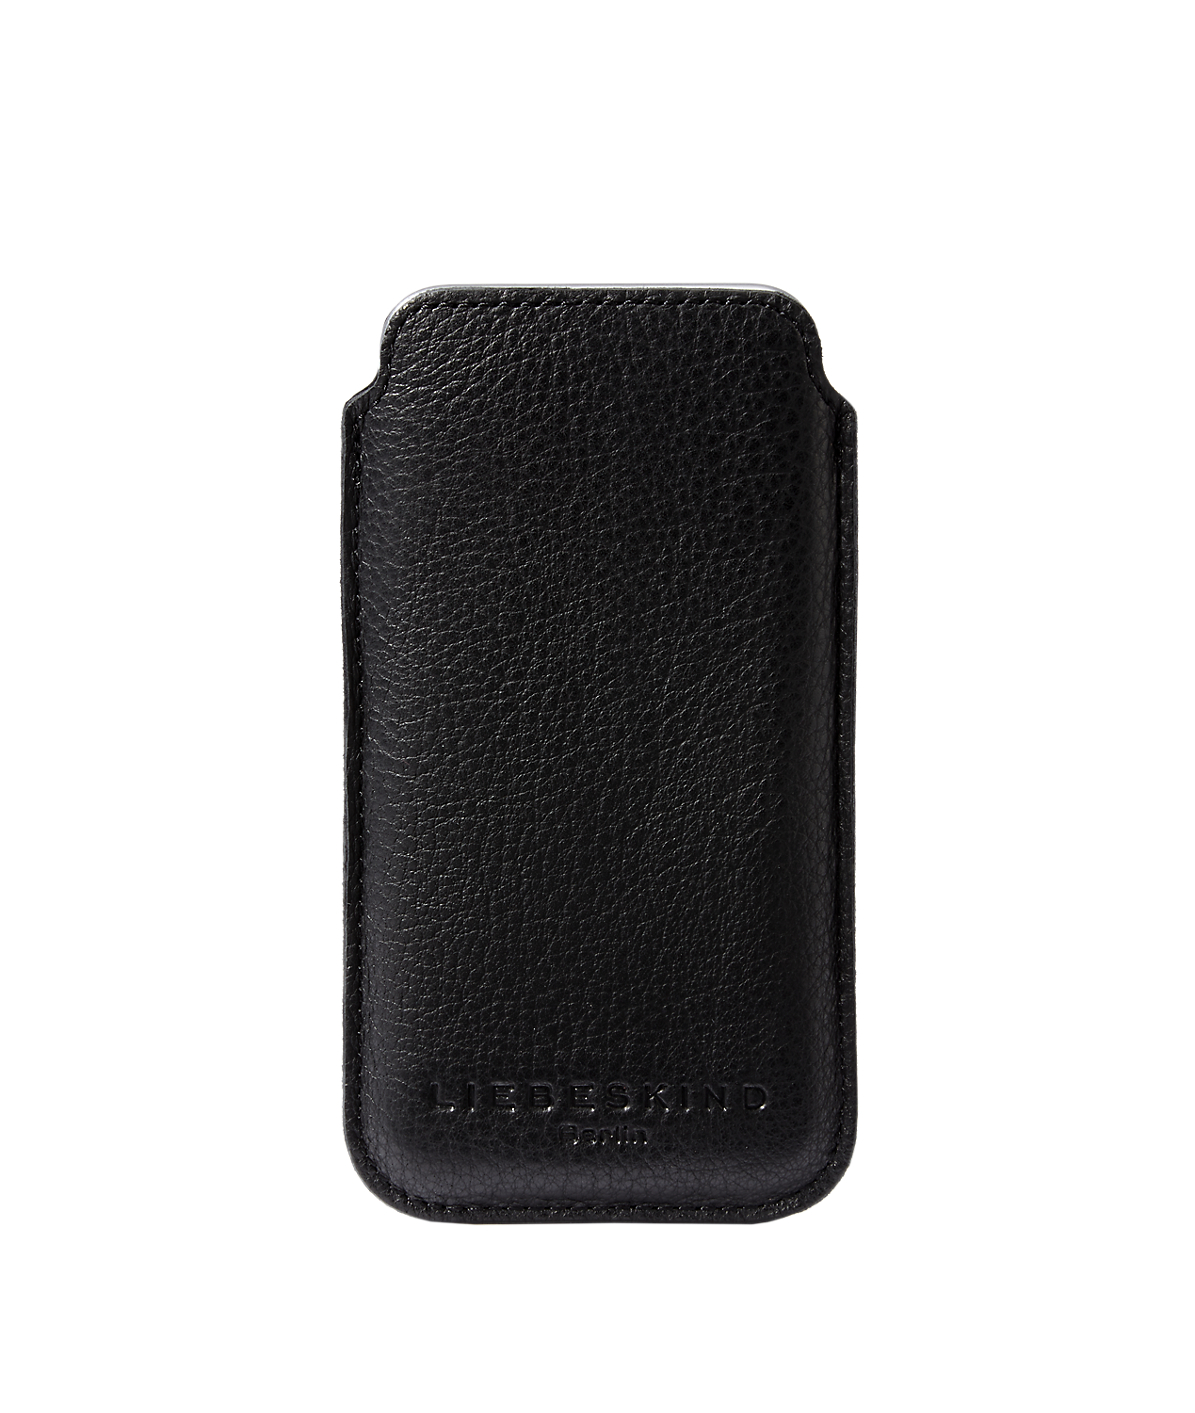 iPhone 6 Plus case from liebeskind